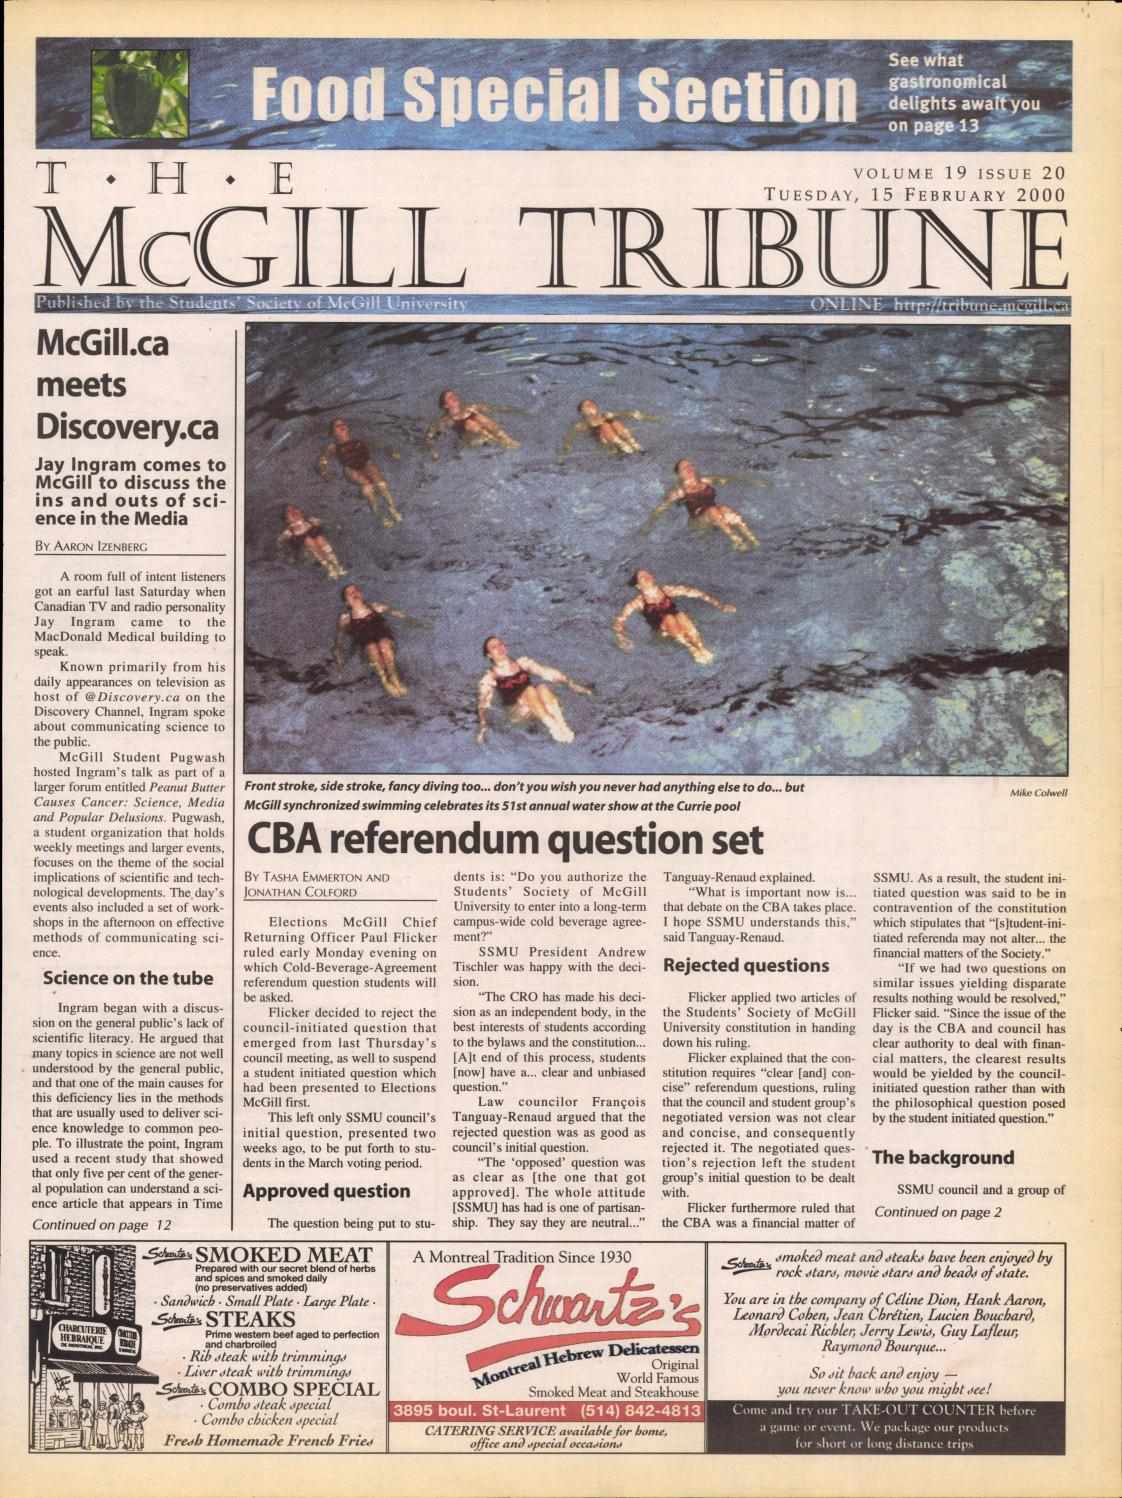 The Mcgill Tribune Vol 19 Issue 20 By The Mcgill Tribune Issuu